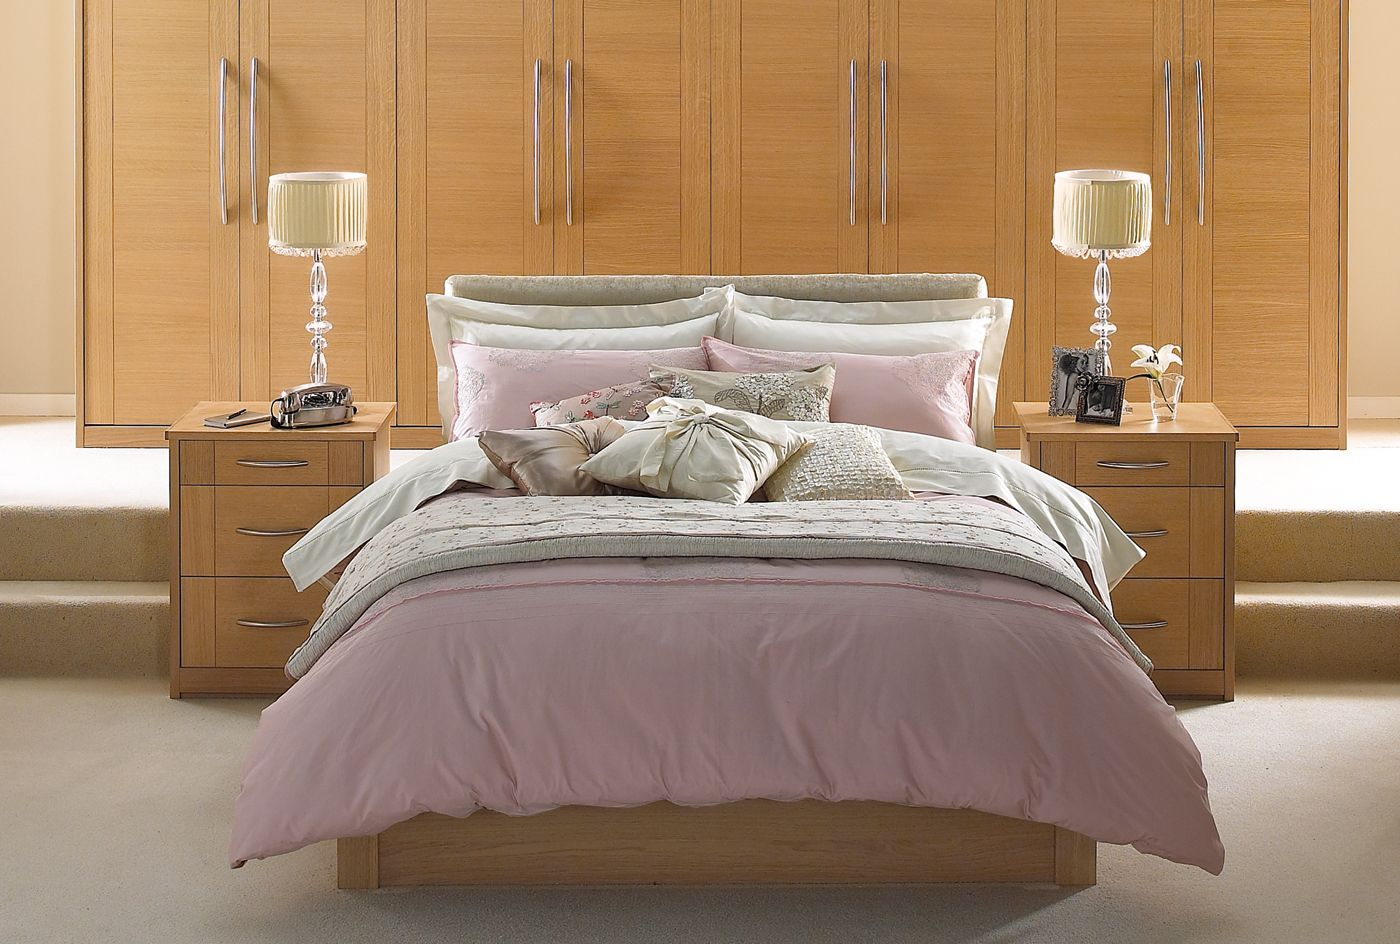 Latitude oak bedroom furniture u oak wardrobes from sharps